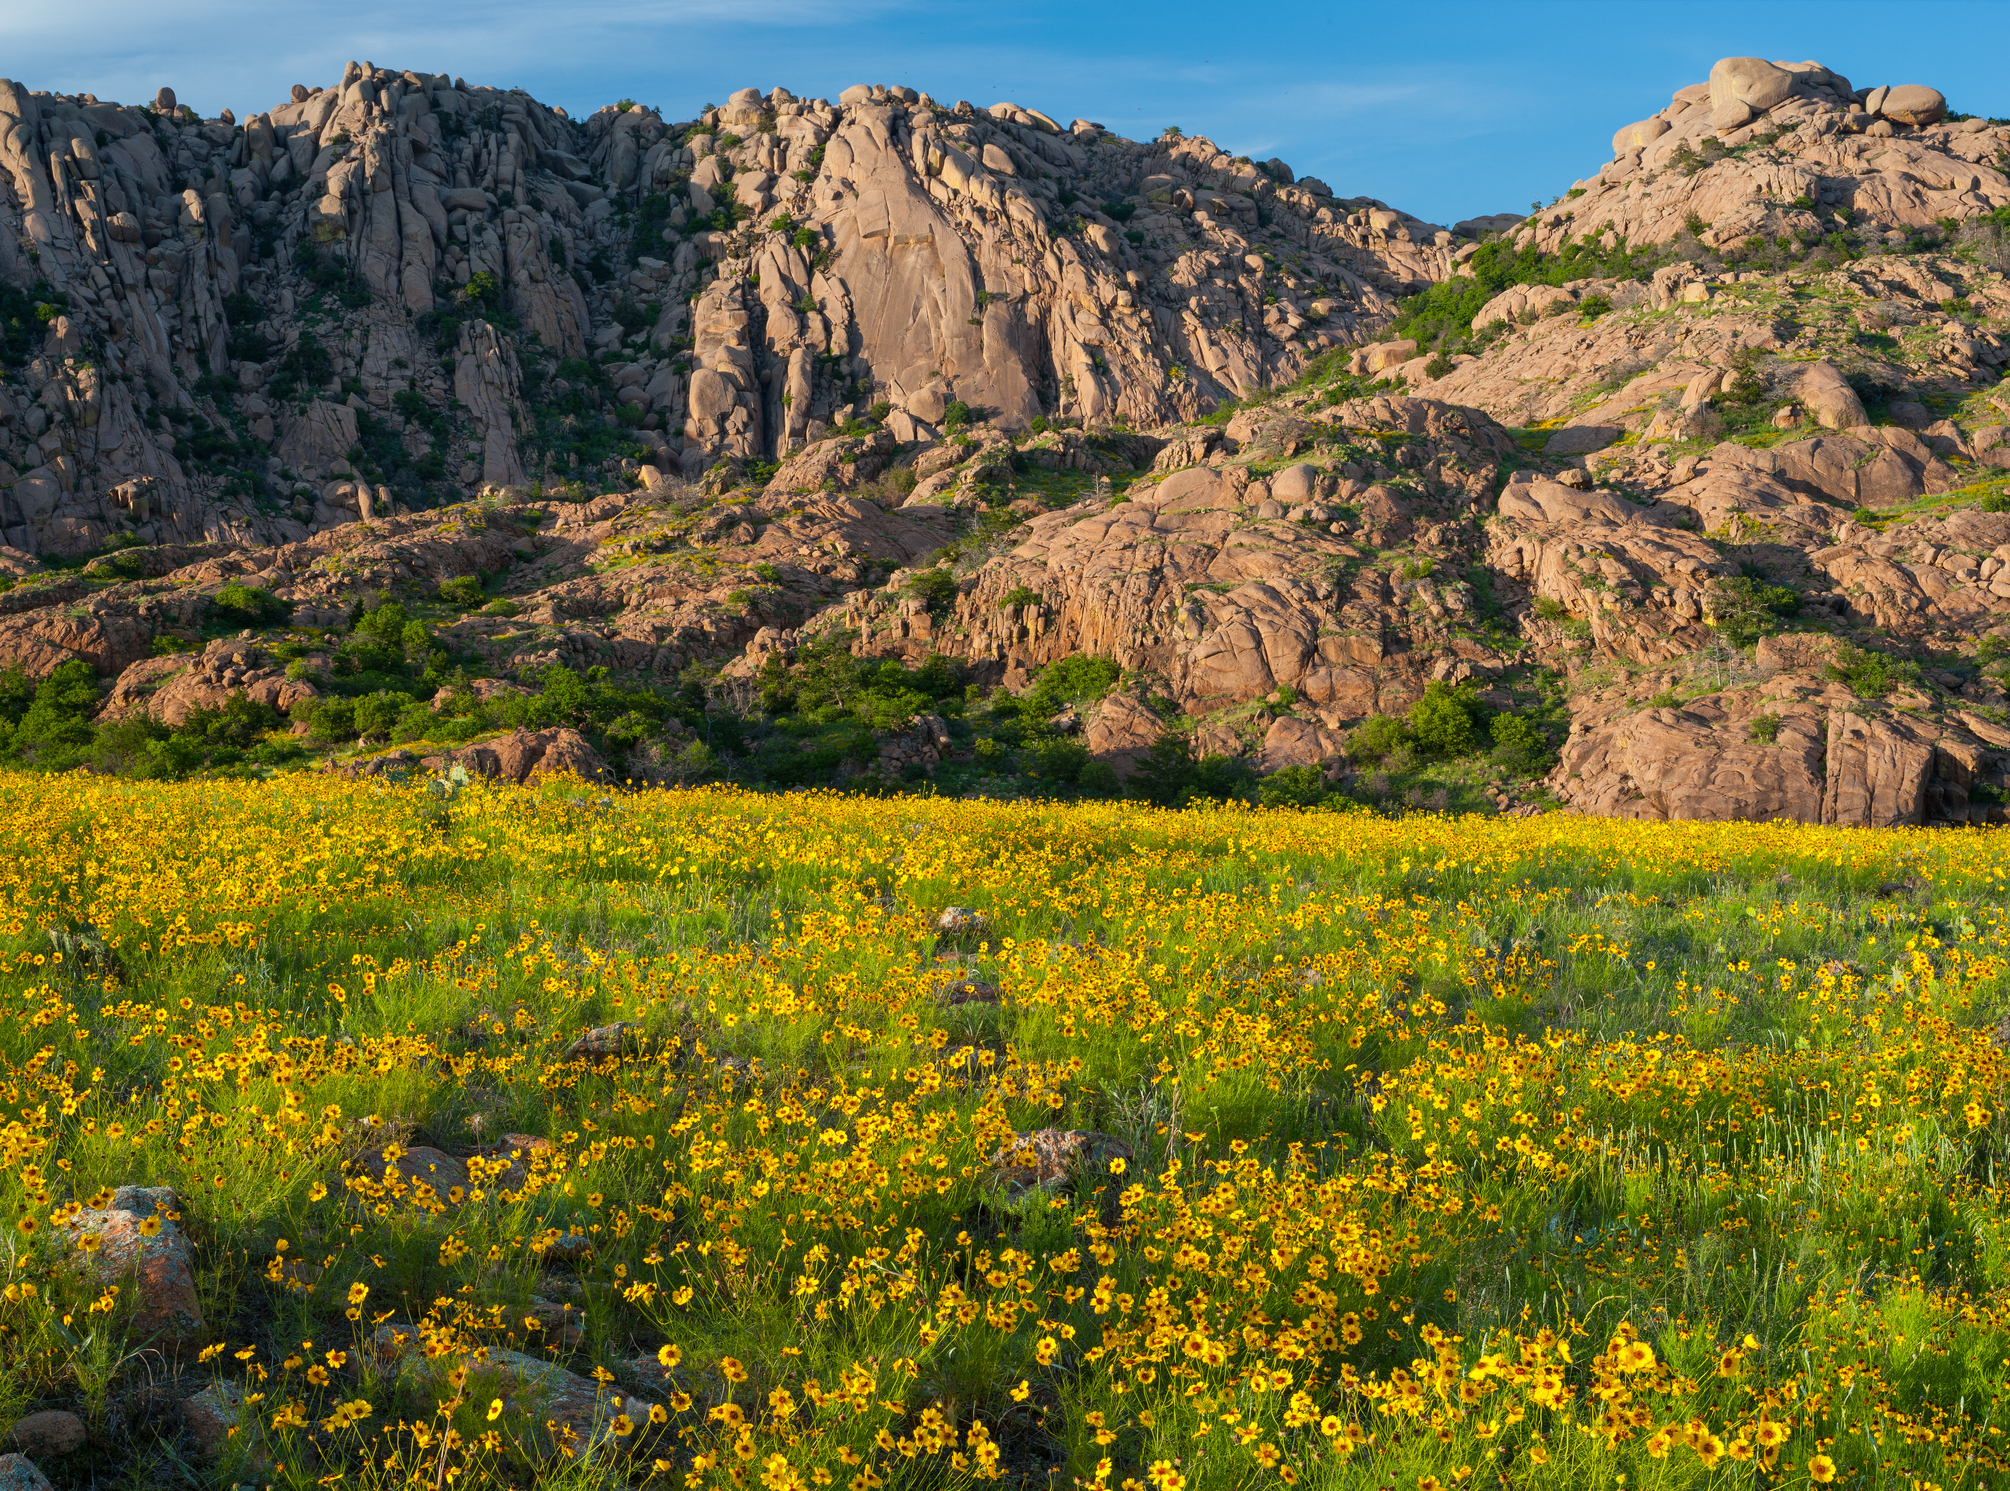 Field of coreopsis wildflowers at Elk Mountain in the Wichita Mountains of Oklahoma.